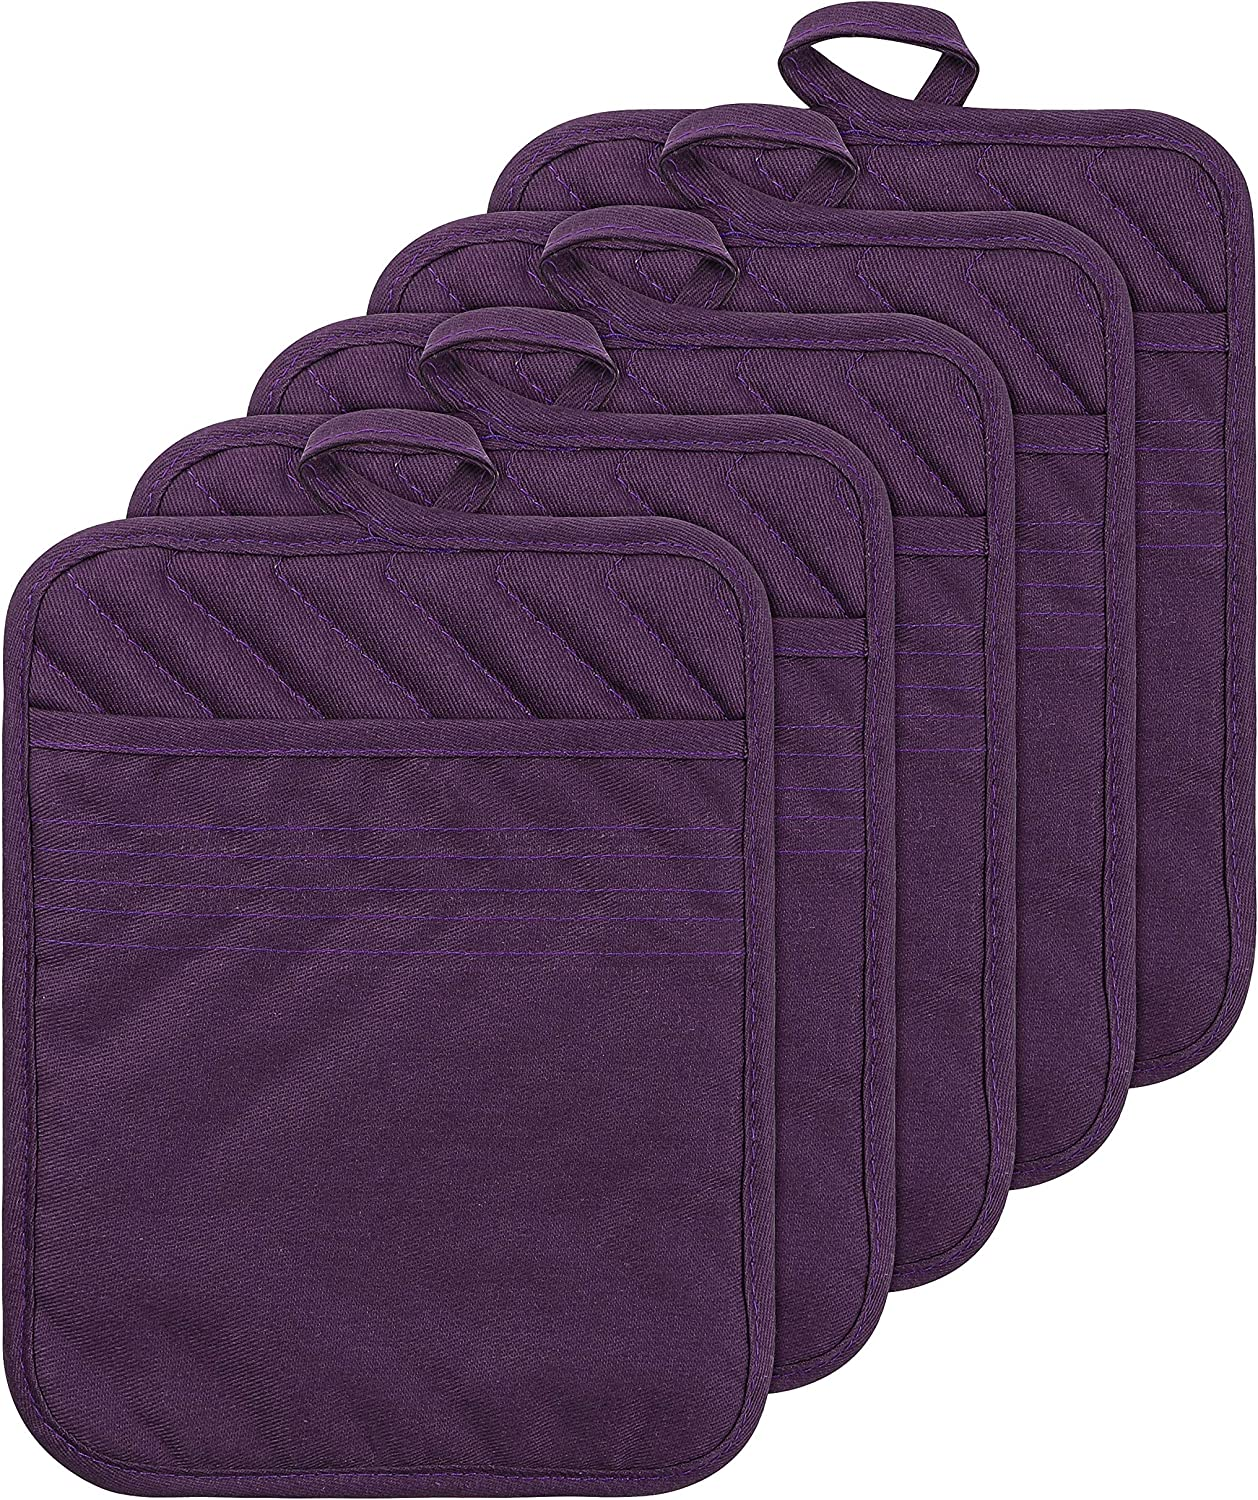 GROBRO7 Set of 5 Pocket Pot Holders Heat Resistant Pot Holder Multipurpose Quilted Cotton Hot Pads Machine Washable Oven Mitts for Daily Kitchen Baking and Cooking by 8.9 x 6.9 Inch Purple